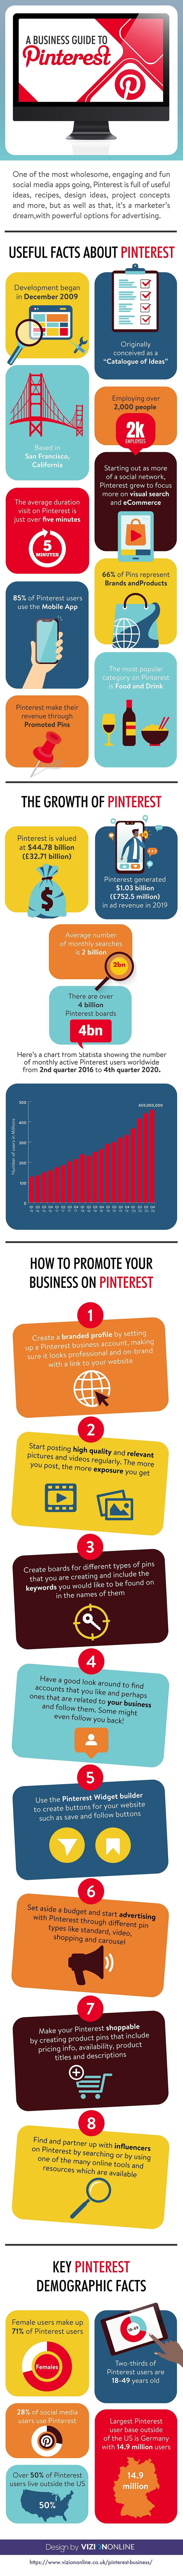 A Business Guide to Pinterest [Infographic]